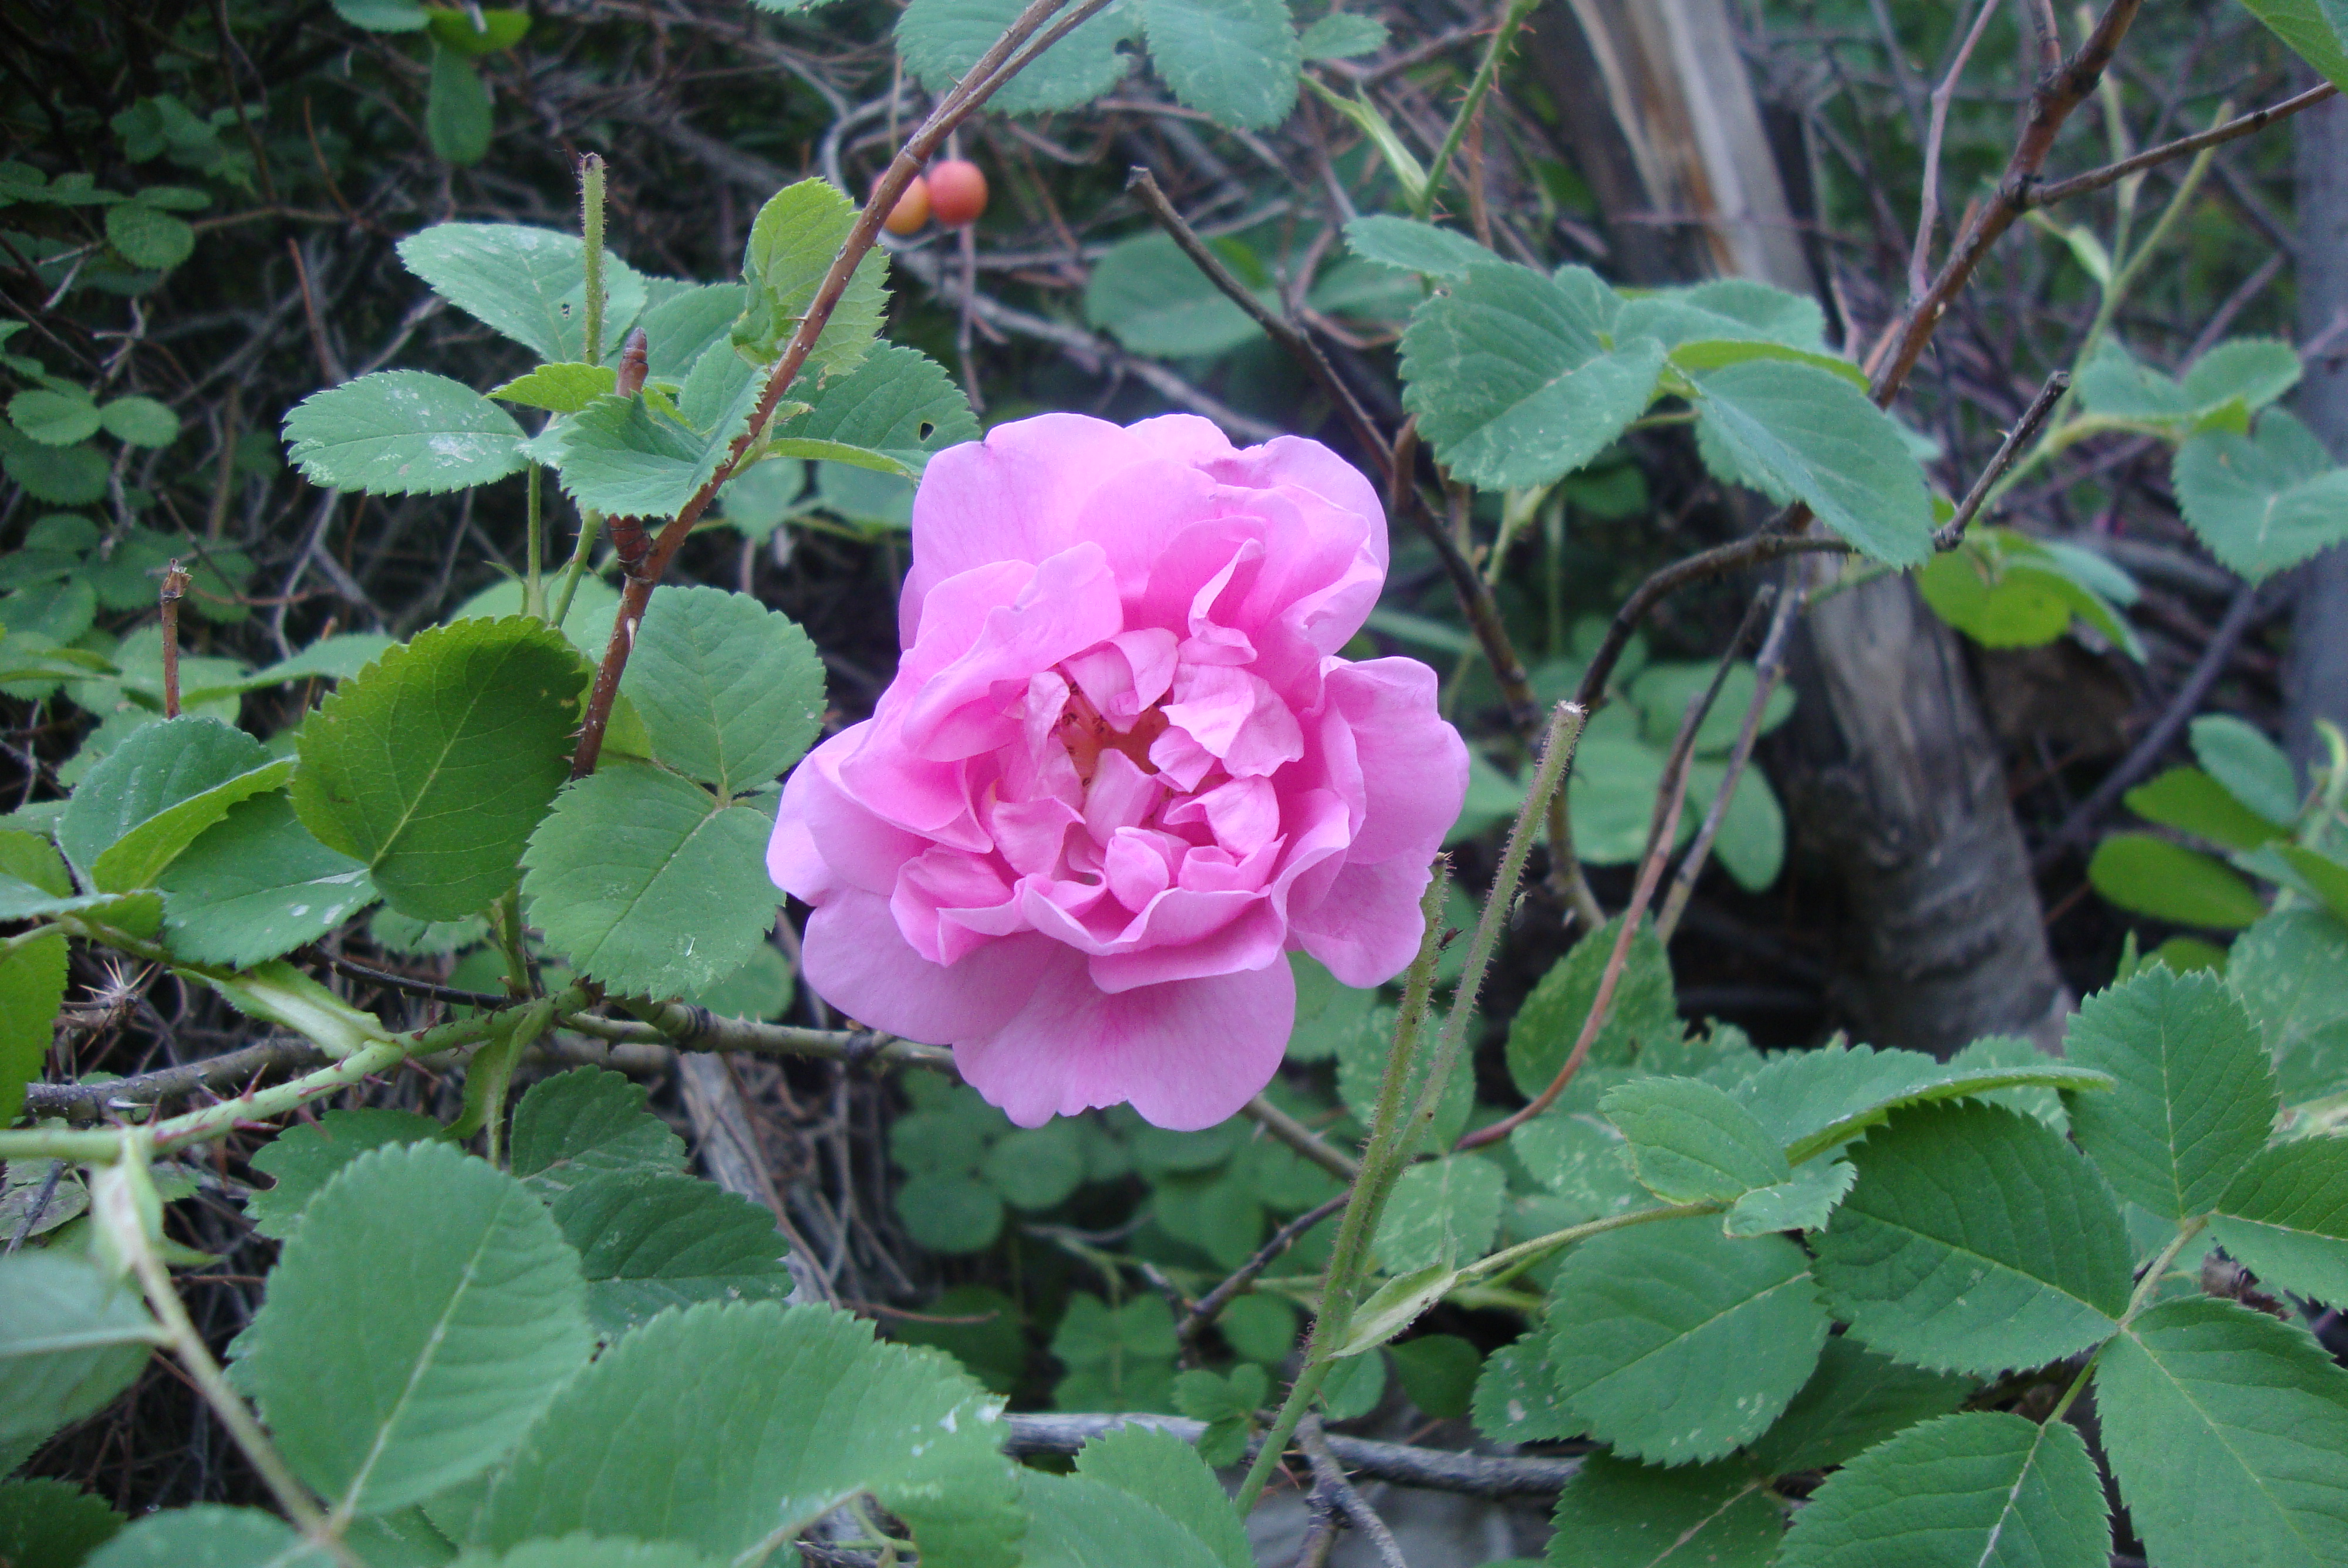 wild rose middle eastern singles Growing roses in partial shade many rose lovers do not have the luxury of optimal sun below are a few examples of singles that have flourished in.